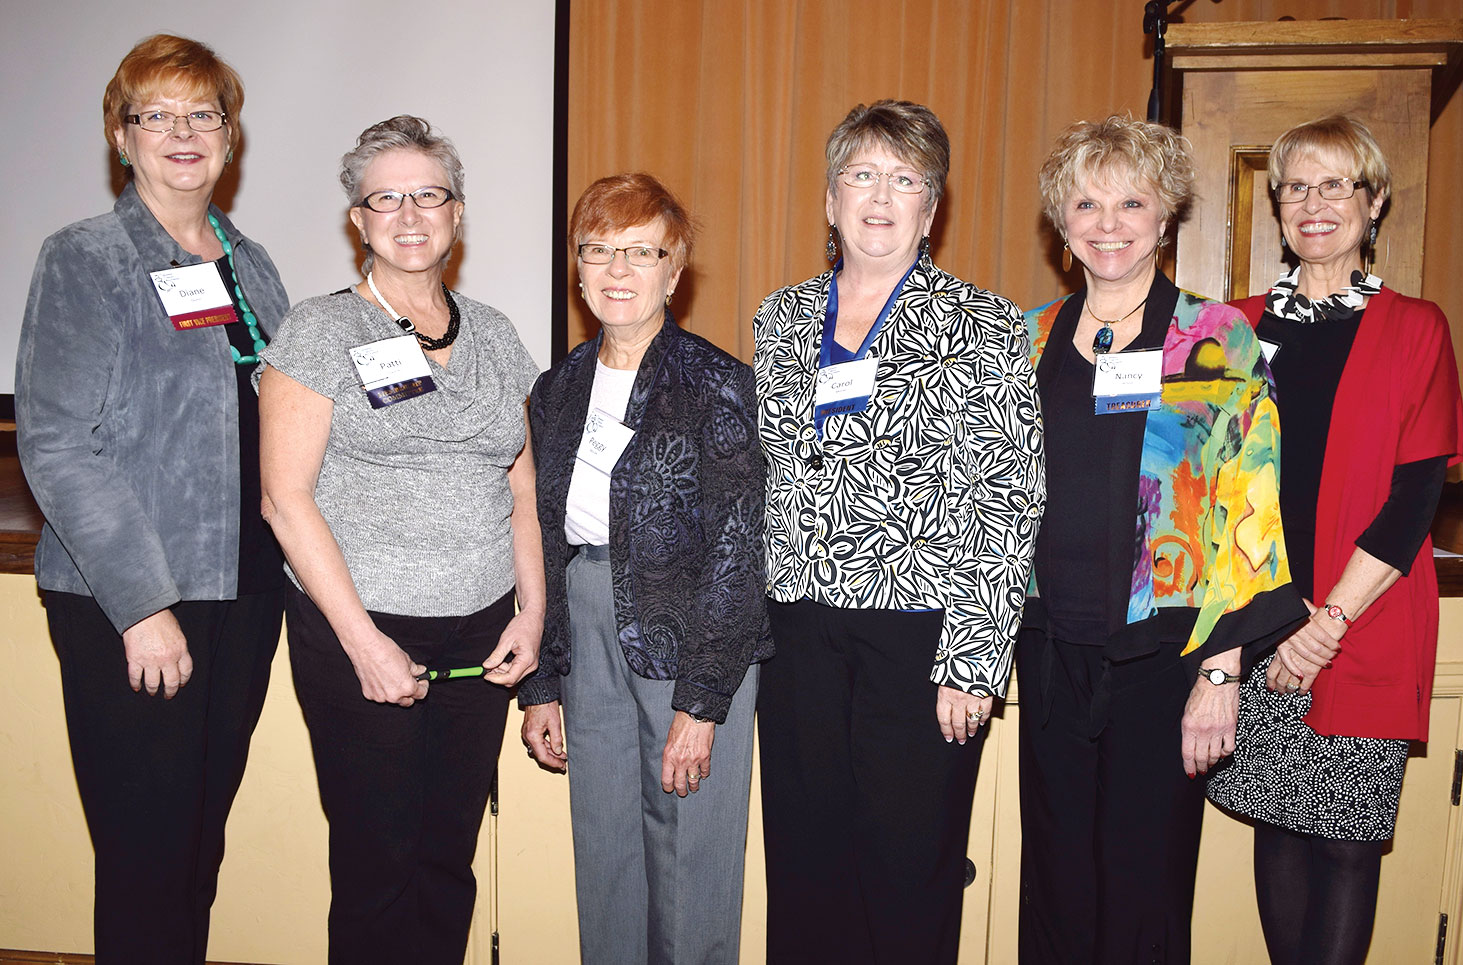 TWOQC 2016 Board members, left to right: Diane Quinn, outgoing member Patti Giannasi, Peggy McGee, Carol Mutter and outgoing members Nancy Wilson and Janice Pell. Absent: Sue Ann Obremski; photo by Eileen Sykora